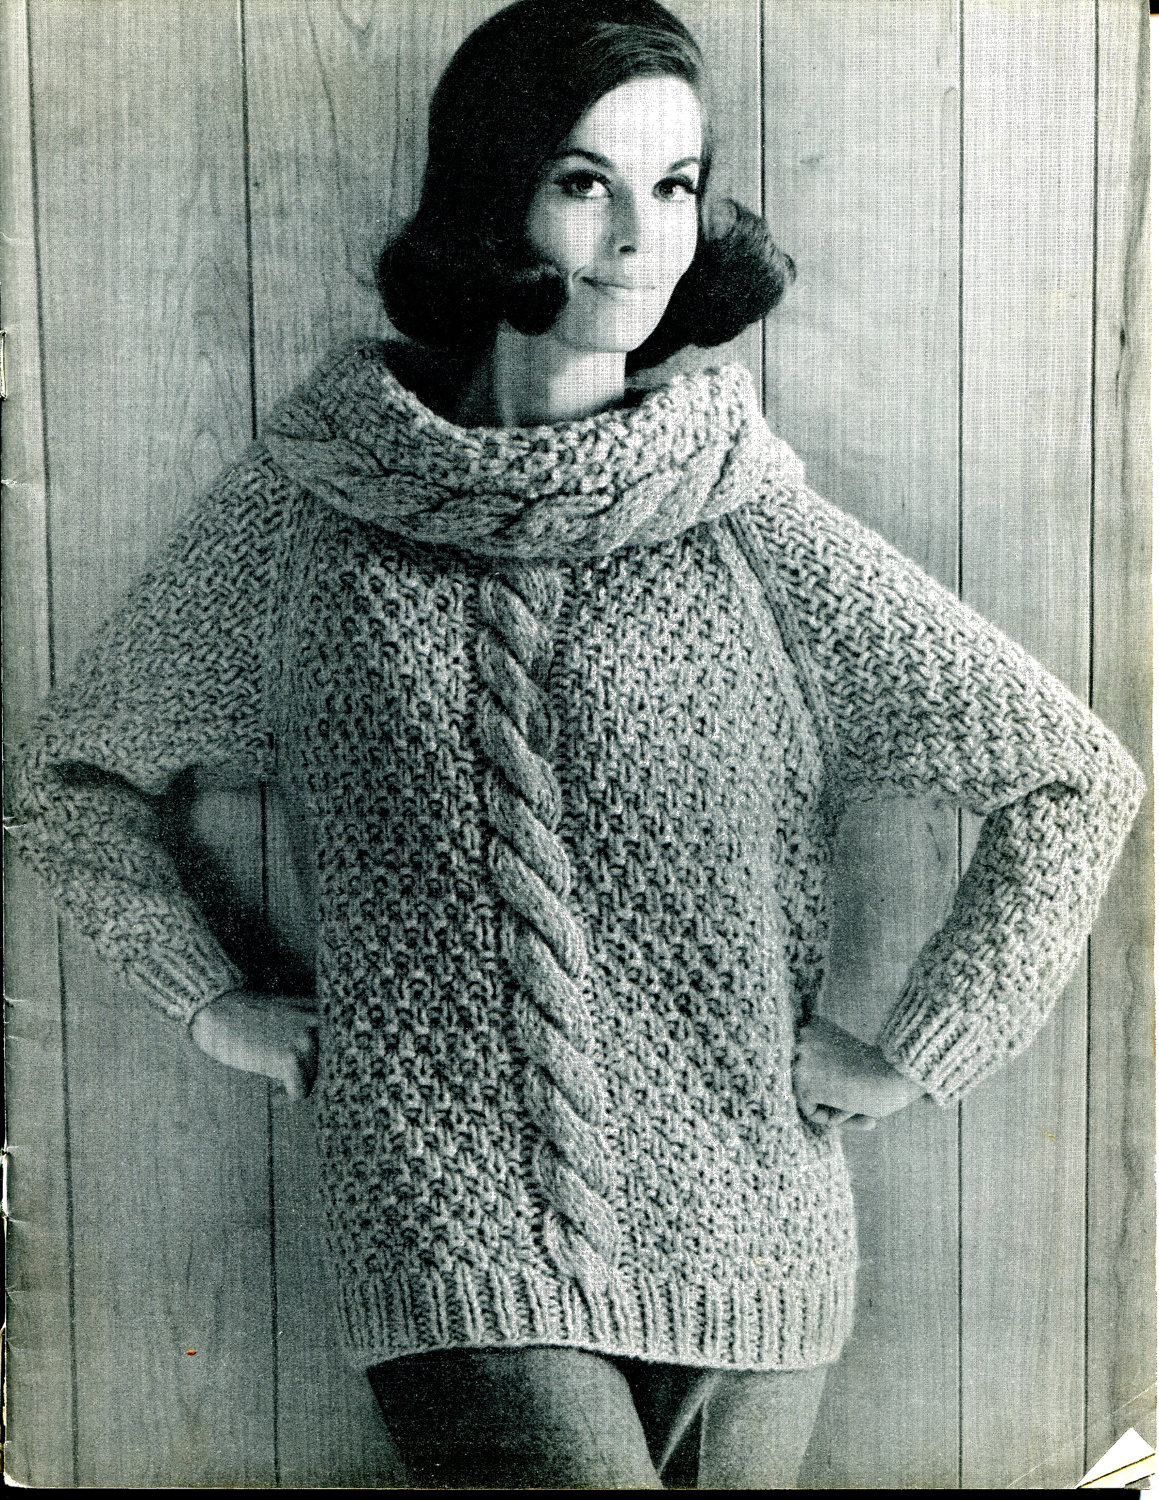 Cable Knit Sweater Patterns | A Knitting Blog